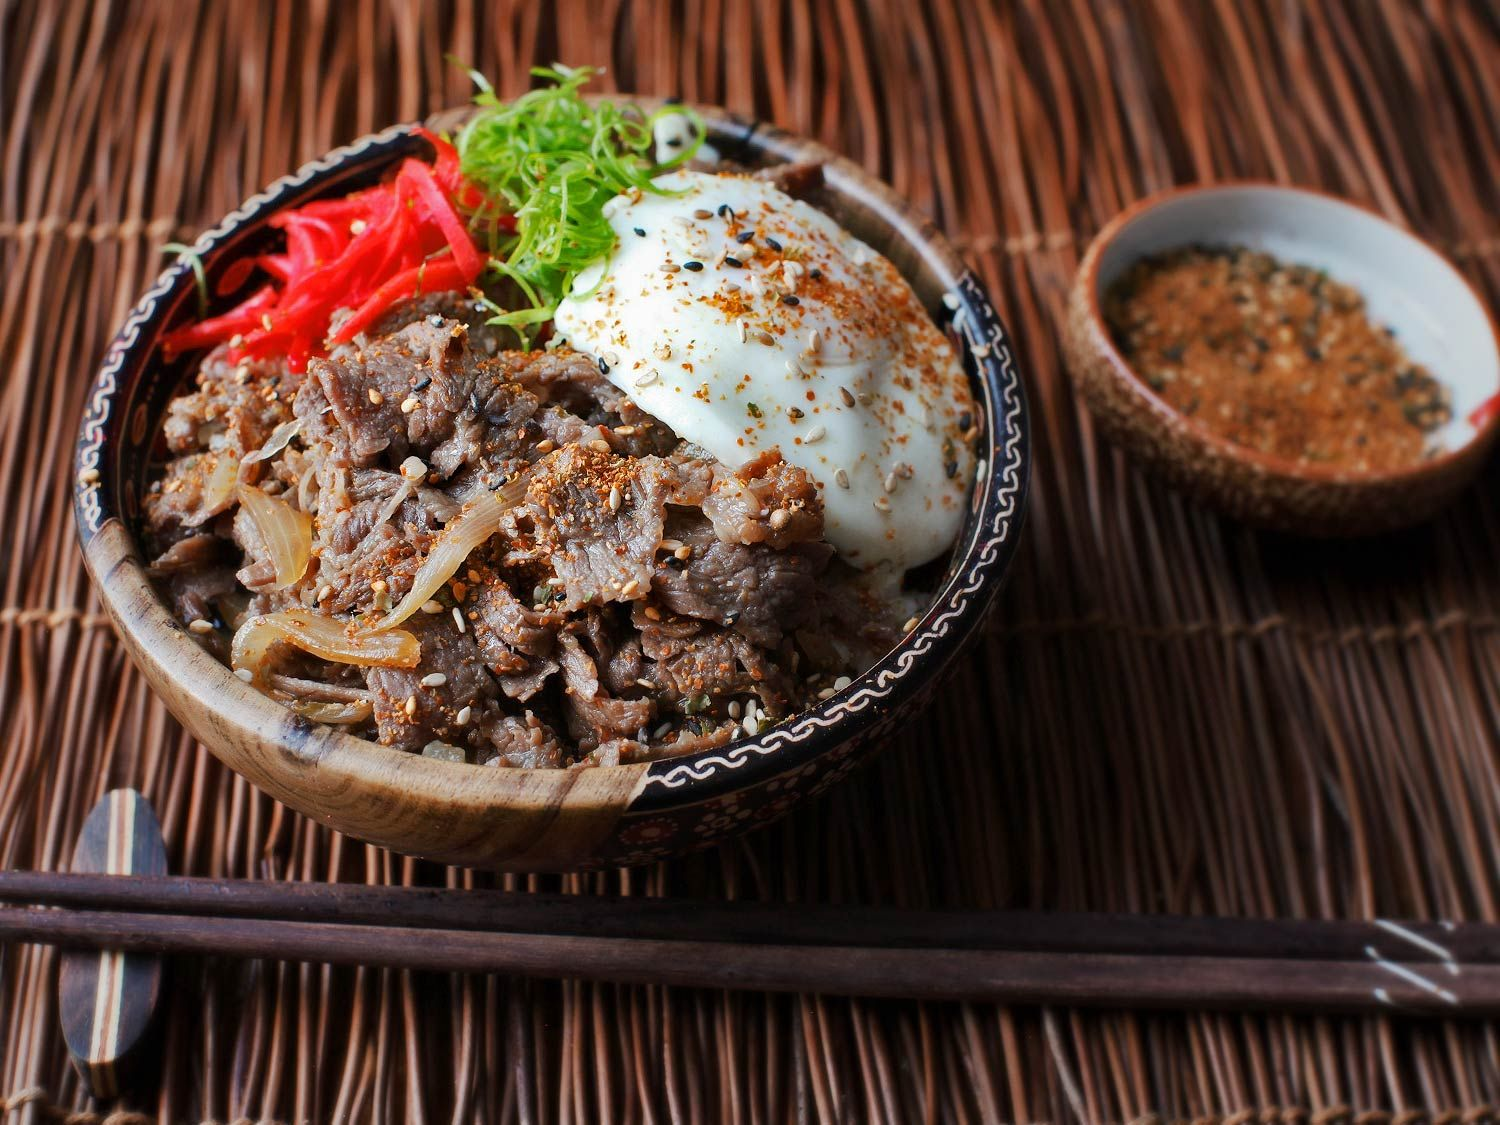 Gyudon (Japanese Simmered Beef and Rice Bowls) #beefandrice